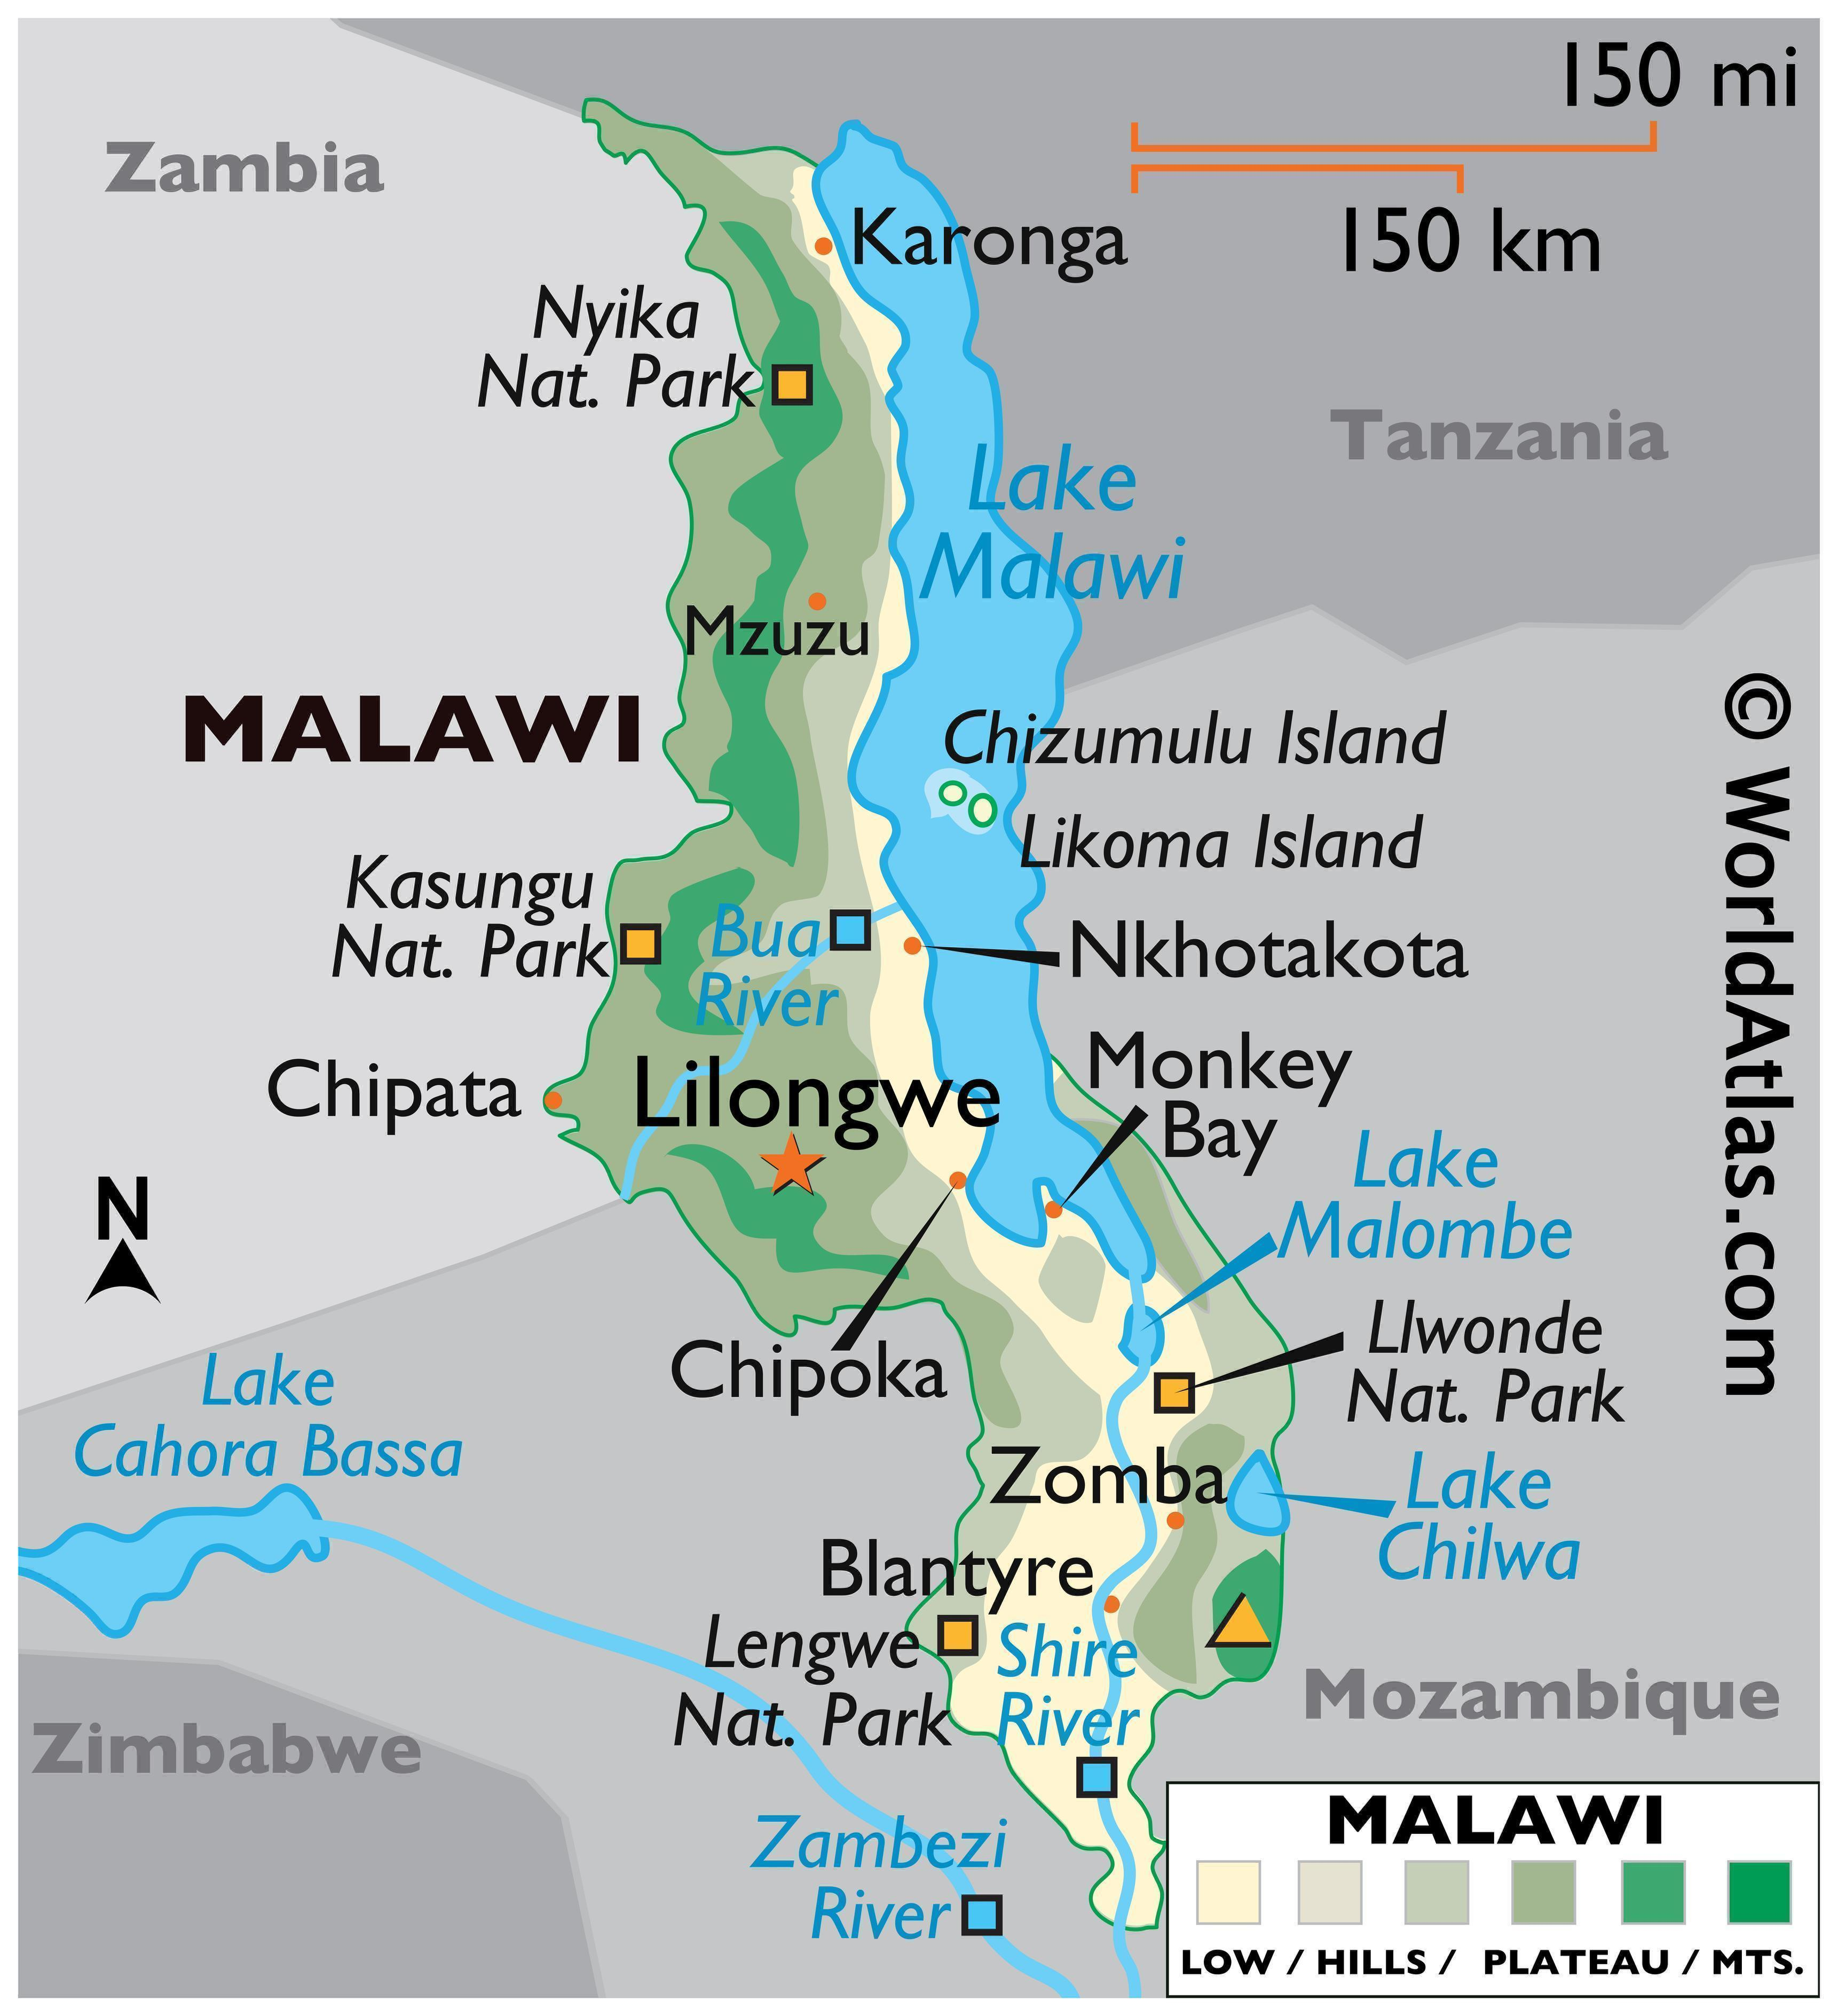 Physical Map of Malawi displaying state boundaries, relief, highest point, important cities, Lake Malawi, and major rivers.